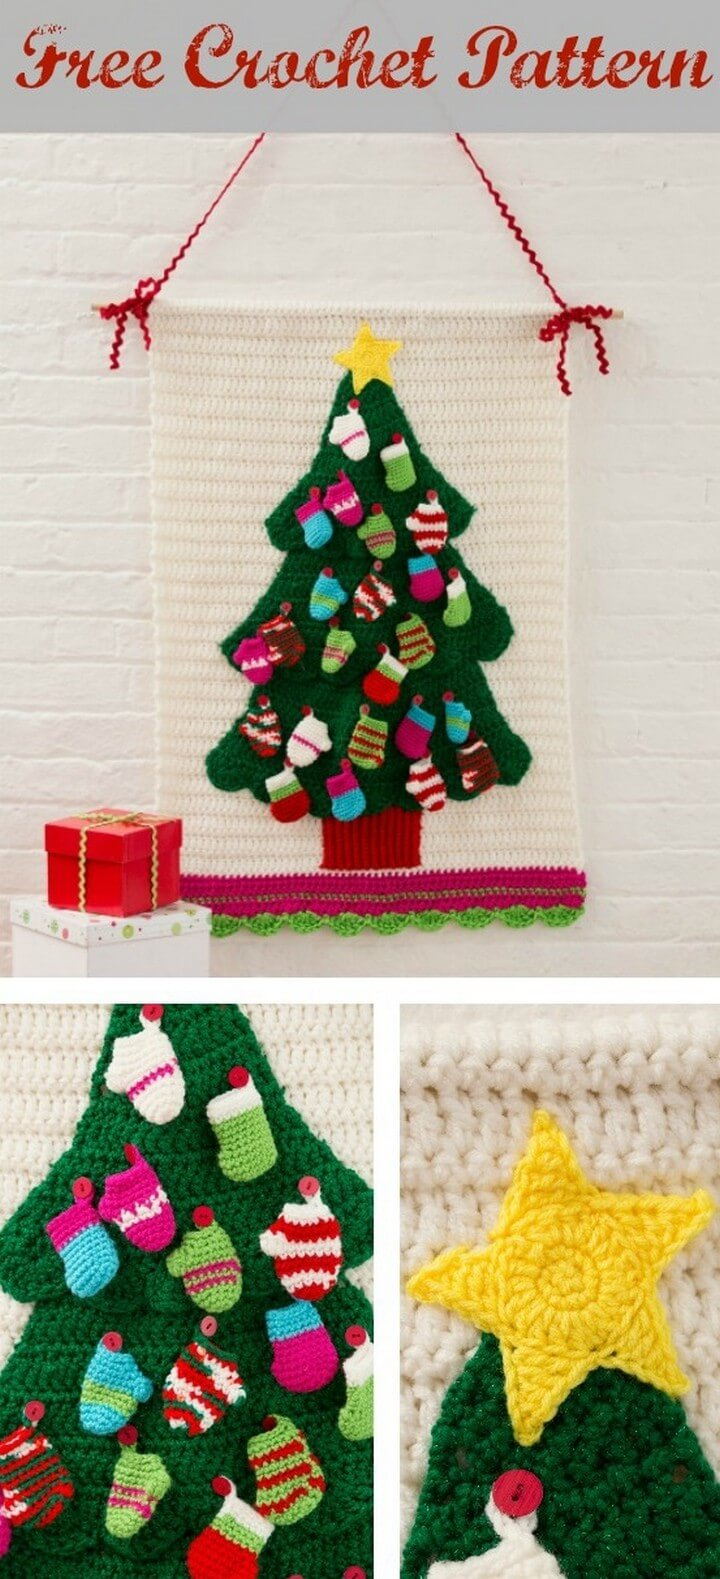 Christmas Tree Wall Hanging Free Crochet Pattern, crochet wall hanging, crochet wall hanging pattern, crochet wall hanging pattern free, crochet mandala wall hanging, crochet wall hanging free pattern, crochet macrame wall hanging patterns, easy crochet wall hanging pattern, crochet mandala wall hanging pattern, crochet wall hanging tutorial, crochet wall hanging diy, freeform crochet wall hanging, crochet afghan wall hanging, free crochet mandala wall hanging patterns, woven crochet wall hanging, crochet rainbow wall hanging, handmade crochet wall hanging, white crochet wall hanging, crochet dream catcher wall hanging, crochet wall hanging basket, crochet unicorn wall hanging pattern, crochet wall hanging ideas, crochet lion wall hanging, crochet owl wall hanging, tapestry crochet wall hanging, filet crochet wall hanging patterns, crochet christmas tree wall hanging pattern, crochet wall hanging decor, crochet boho wall hanging, crochet santa wall hanging, crochet christmas wall hanging, crochet snowman wall hanging, crochet wall hanging target, crochet rainbow wall hanging pattern, crochet heart wall hanging, how to make crochet wall hanging, crochet owl wall hanging pattern, crochet wall hanging pockets, crochet wall hanging australia, crochet snowman wall hanging pattern, crochet christmas tree wall hanging, crochet wall hanging organizer, crochet wall hanging designs, crochet wall hanging pinterest, crochet heart wall hanging pattern, etsy crochet wall hanging, crochet hanging wall art, crochet owl wall hanging tutorial, crochet chevron wall hanging, crochet doily wall hanging, crochet granny square wall hanging, crochet wall hanging youtube, crochet wall hanging bali, crochet wall hanging baby, crochet wall hanging easy, crochet wall hanging circle, crochet wall hanging storage, crochet name wall hanging, crochet wall hanging nz, crochet wall hanging amazon, tree of life crochet wall hanging, crochet wall hanging flowers, crochet owl wall hanging pattern free, crochet wall hanging alpaca, crochet unicorn wall hanging, crochet snowflake wall hanging, crochet wall hanging large, crochet owl wall hanging free pattern, crochet animal wall hanging, crochet wall hanging kit, how to do crochet wall hanging, crochet applique wall hanging, crochet bunny wall hanging, crochet wall hanging macrame, crochet wall hanging cream, crochet wall hanging how to, last name crochet wall hanging, crochet wall hanging pictures, crochet wall hanging kmart, crochet wall hanging doll, ideas for crochet wall hanging, red wall hanging crochet, boho crochet wall hanging pattern, filet crochet wall hanging, small crochet wall hanging, crochet a wall hanging, handmade crochet wall hanging pattern, tunisian crochet wall hanging, crochet wall hanging for nursery, door wall hanging crochet, framed crochet wall hanging, crochet wall hanging round, how to crochet wall hanging, crochet llama wall hanging, retro crochet wall hanging, crochet easter wall hanging, crochet butterfly wall hanging, geometric crochet wall hanging, crochet wall hanging online, crochet hoop wall hanging, wall hanging crochet cotton, make your own crochet wall hanging, chakra crochet wall hanging, crochet jellyfish wall hanging, crochet mobile wall hanging, crochet cross wall hanging, wall hanging in crochet, cheap crochet wall hanging, wall hanging of crochet, wall hanging crochet items, crochet tree wall hanging, crochet stitches wall hanging, crochet words wall hanging, crochet deer head wall hanging, crochet mountain wall hanging, crochet hexagon wall hanging, pattern for crochet wall hanging, wall hanging with crochet, crochet chakra wall hanging pattern, spotlight crochet wall hanging, wall hanging crochet dream catcher, bohemian crochet wall hanging, large crochet wall hanging patterns, crochet pattern for wall hanging, birdhouse crochet wall hanging, crochet for wall hanging, crochet for beginners wall hanging, crochet mirror wall hanging, crochet nativity wall hanging, simple crochet wall hanging, crochet wall hanging buy, make a crochet wall hanging, diytomake.com